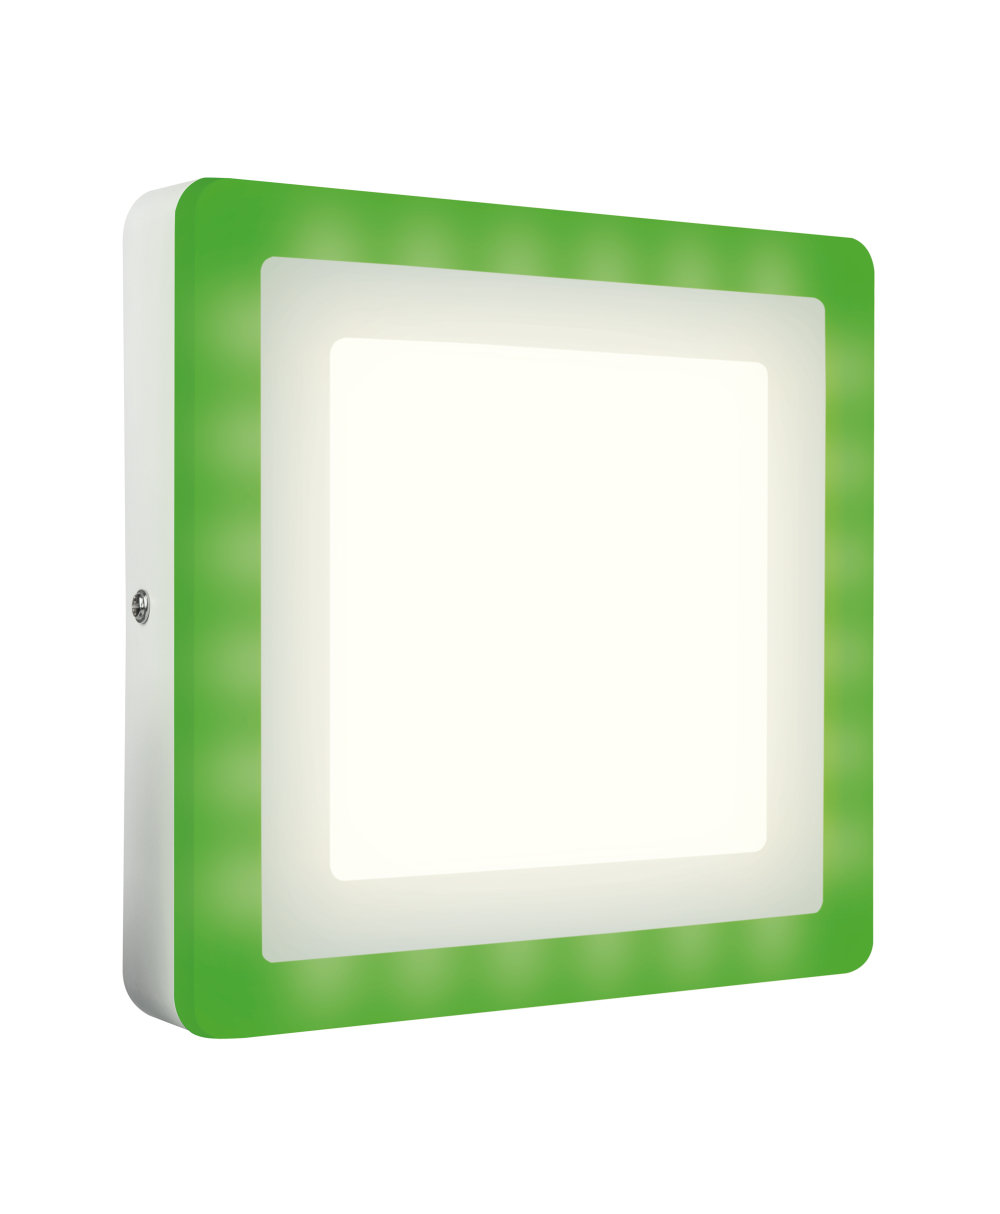 Mando a distancia para LED Color White RD verde F39